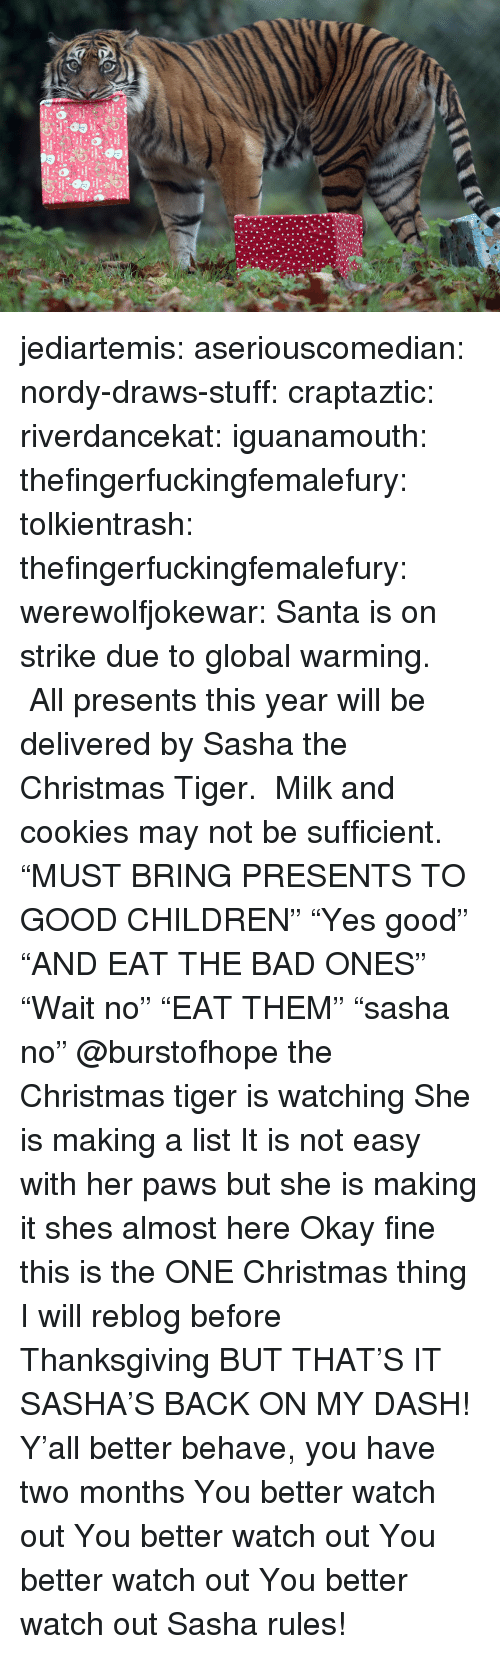 """Bad, Children, and Christmas: jediartemis:  aseriouscomedian:  nordy-draws-stuff:   craptaztic:  riverdancekat:  iguanamouth:  thefingerfuckingfemalefury:  tolkientrash:  thefingerfuckingfemalefury:  werewolfjokewar:  Santa is on strike due to global warming. All presents this year will be delivered by Sasha the Christmas Tiger. Milk and cookies may not be sufficient.  """"MUST BRING PRESENTS TO GOOD CHILDREN"""" """"Yes good"""" """"AND EAT THE BAD ONES""""  """"Wait no"""" """"EAT THEM"""" """"sasha no""""   @burstofhope the Christmas tiger is watching  She is making a list  It is not easy with her paws but she is making it   shes almost here   Okay fine this is the ONE Christmas thing I will reblog before Thanksgiving BUT THAT'S IT  SASHA'S BACK ON MY DASH!  Y'all better behave, you have two months   You better watch out You better watch out You better watch out You better watch out  Sasha rules!"""